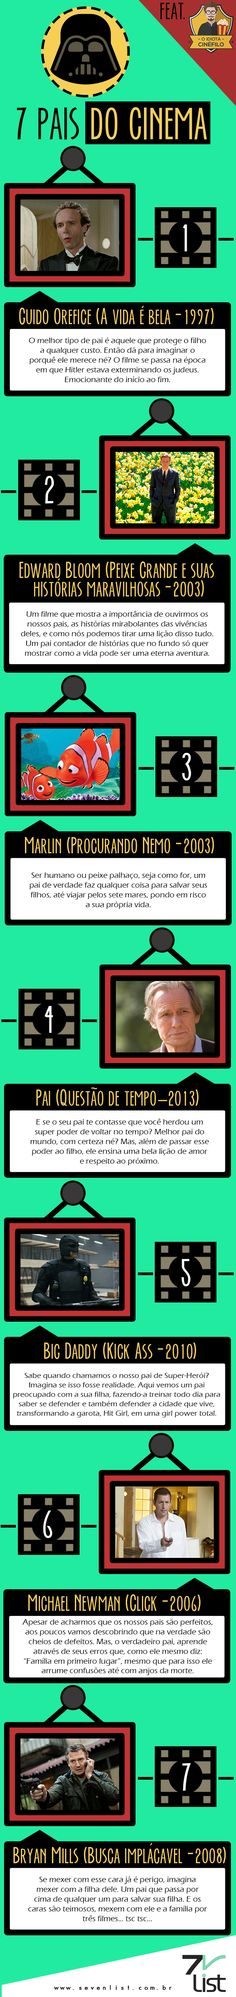 #Sevenlist #Infografico #Design #Cinema #Filmes #Personagens #Pais #Diadospais